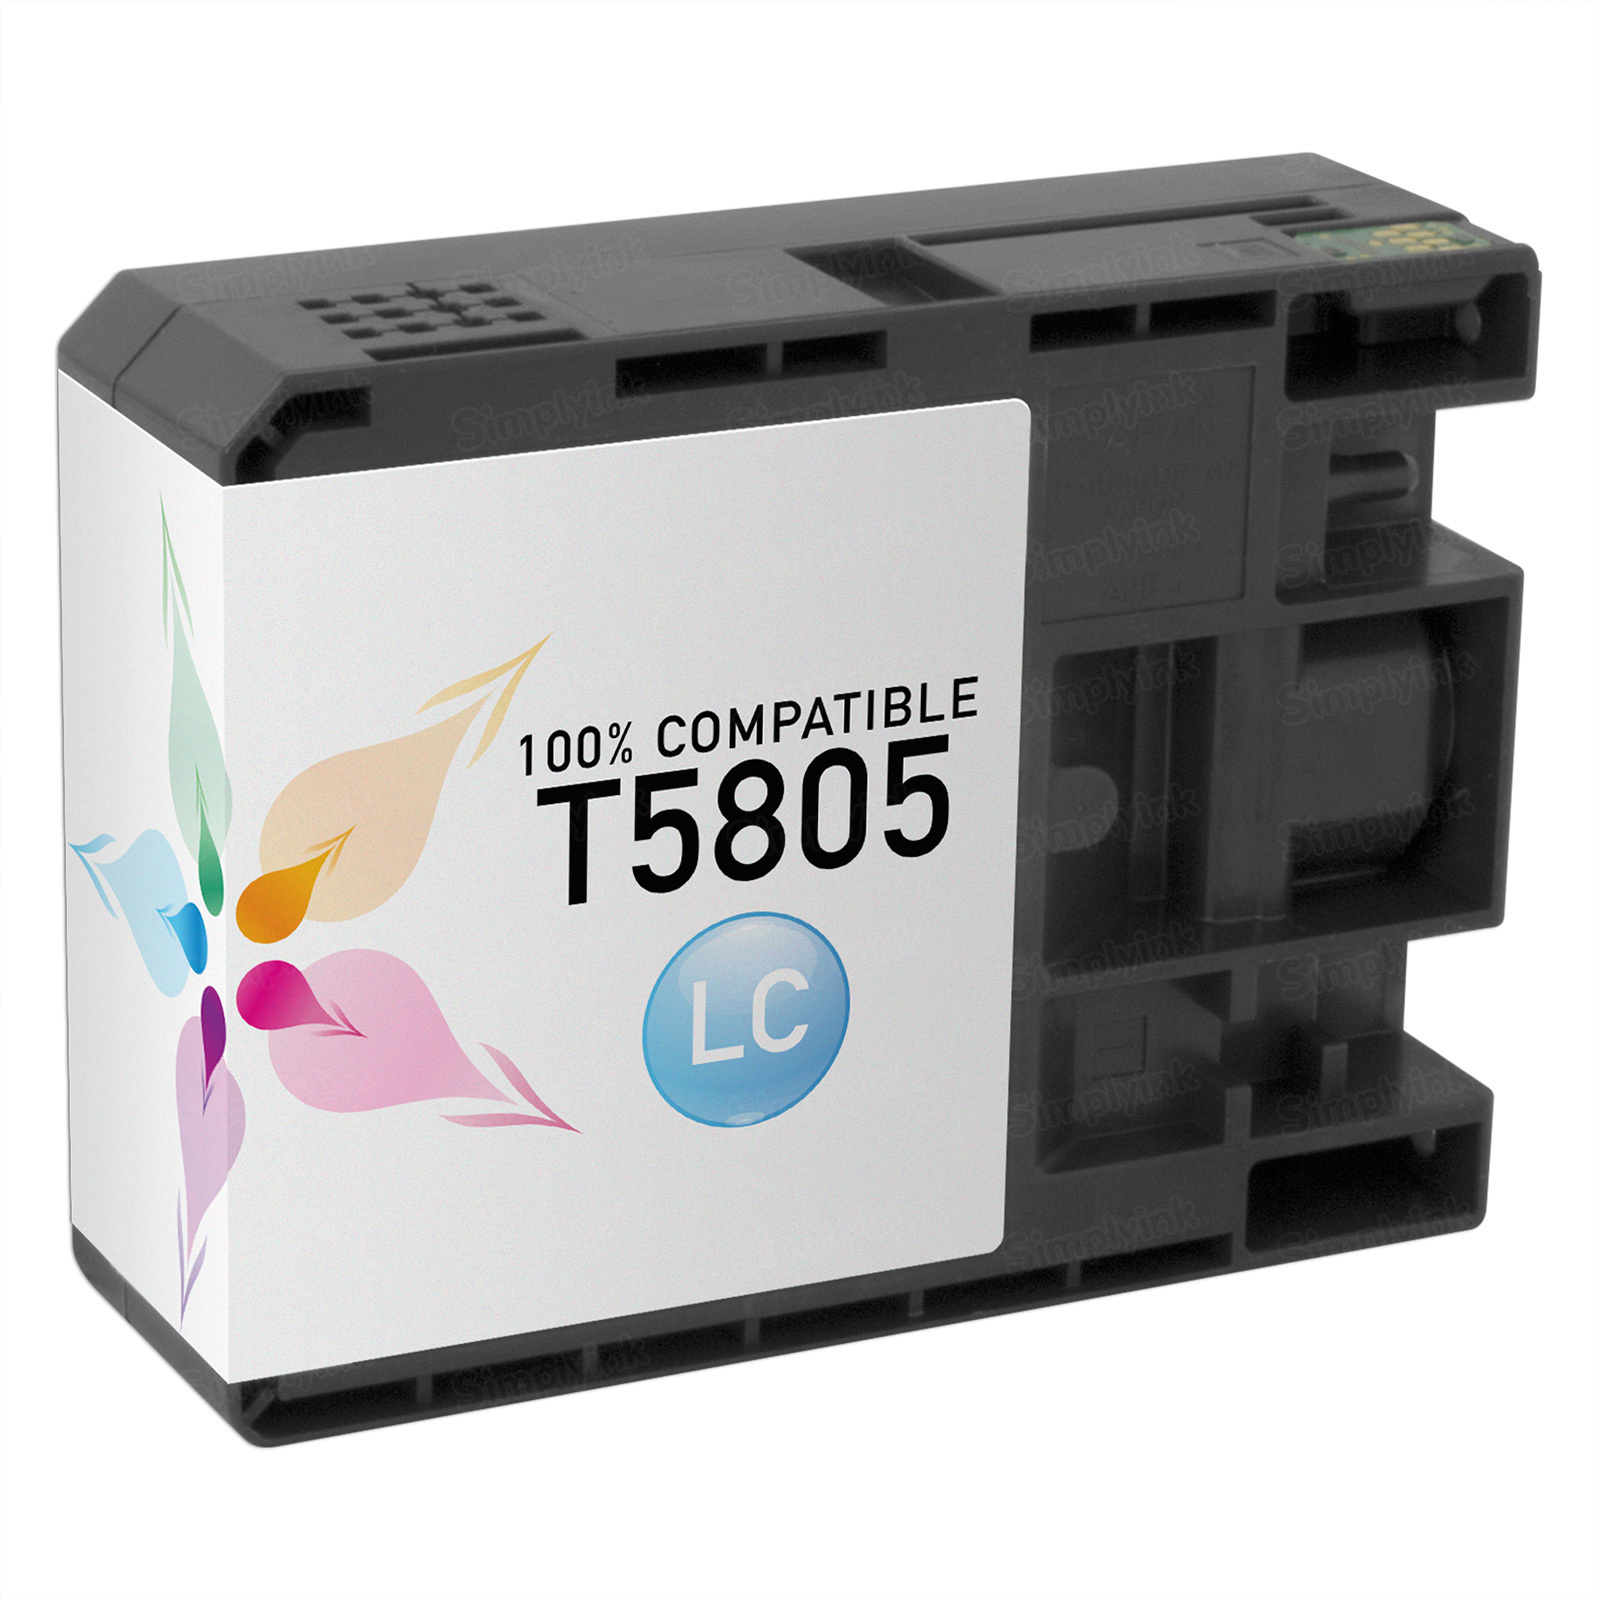 Epson Compatible T580500 Light Cyan Inkjet Cartridge for the Stylus Pro 3800